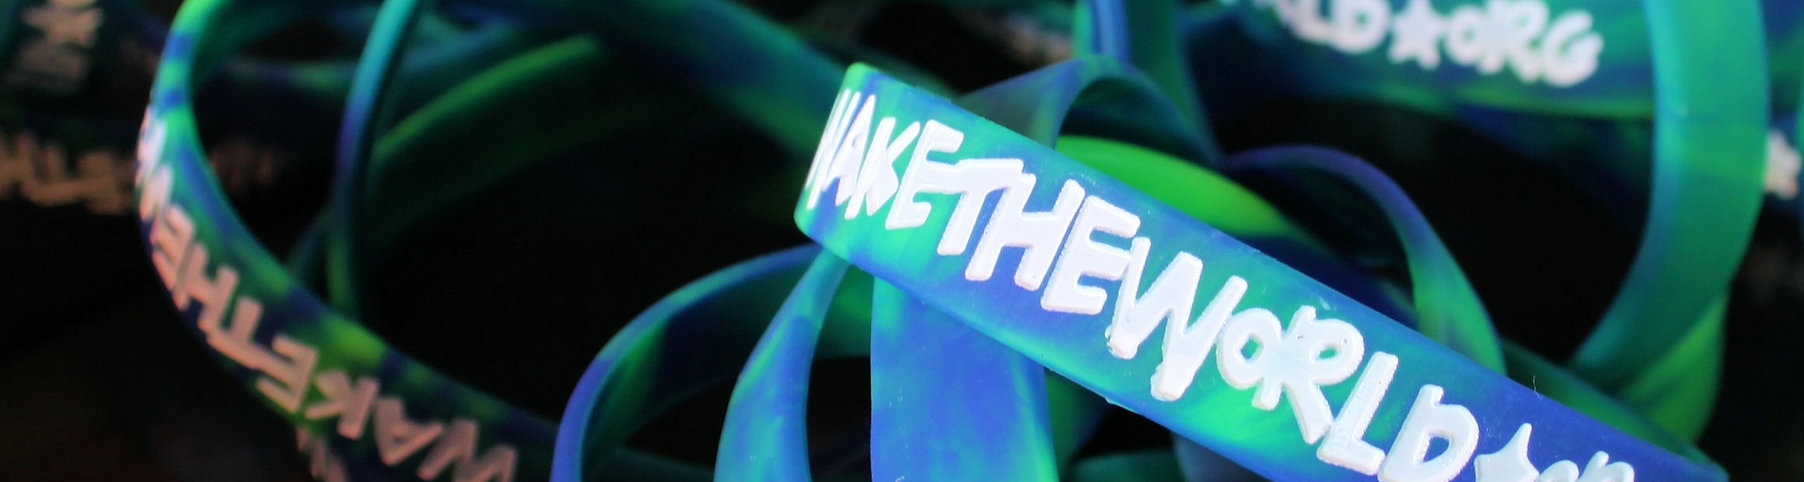 wakeboarding water sports ministry, Wake the World